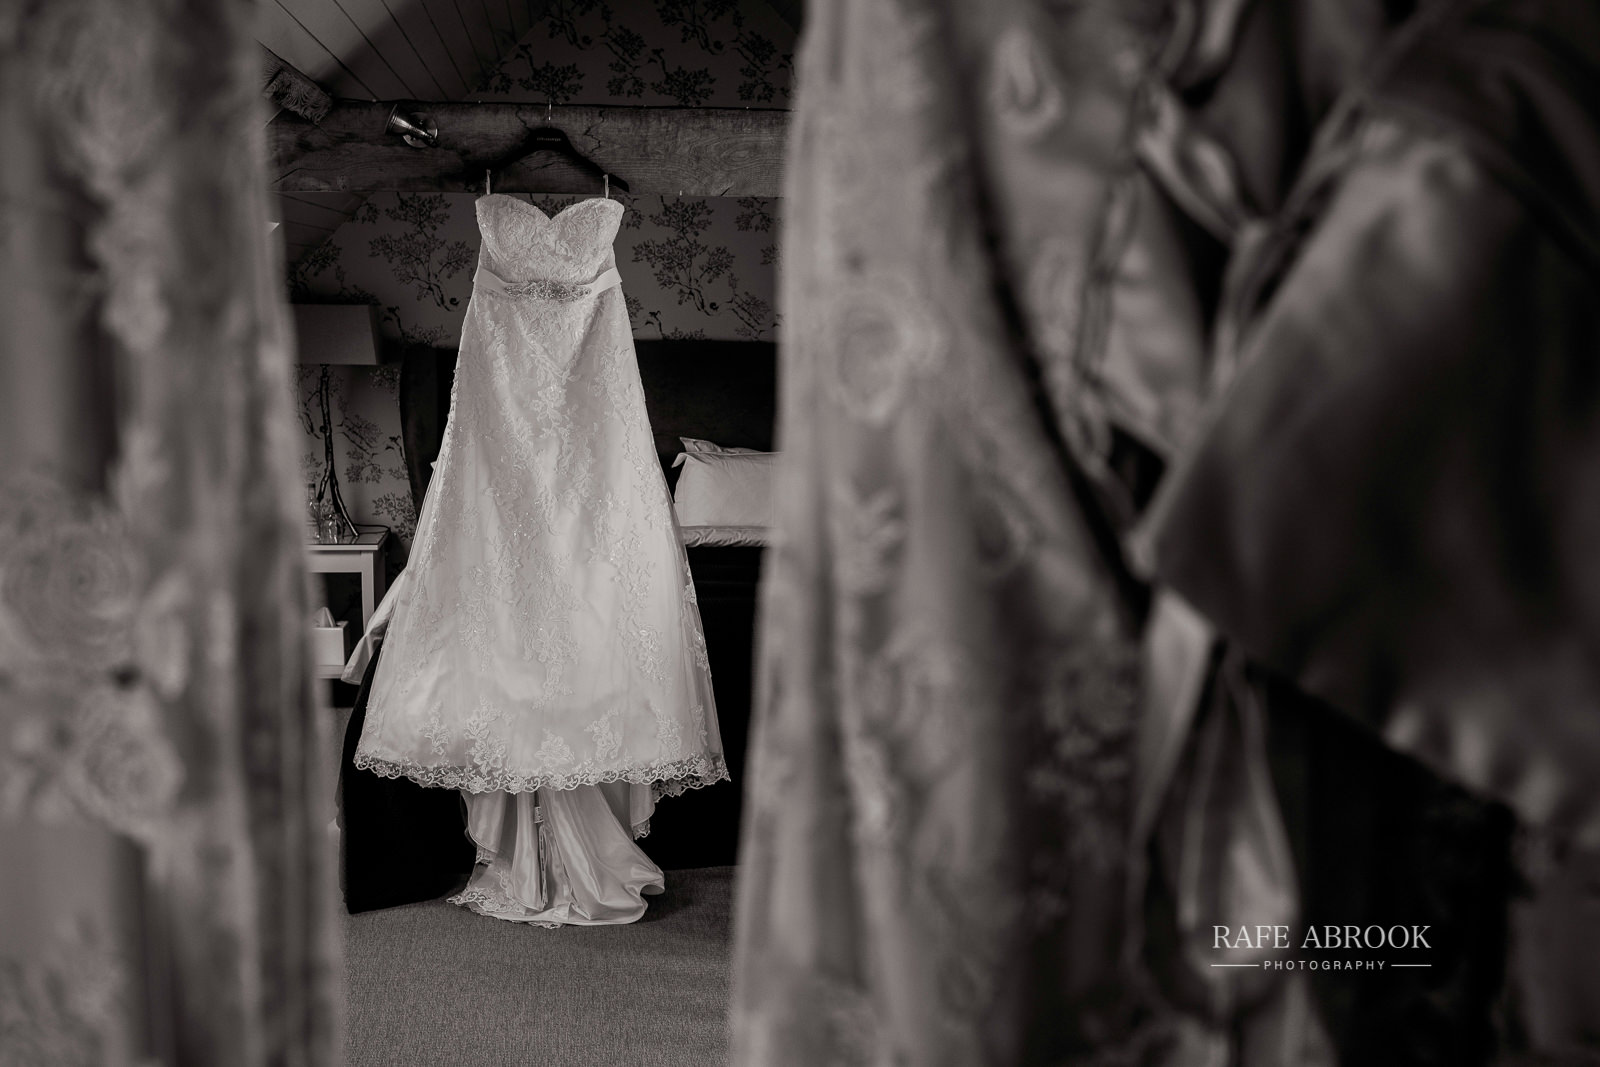 south farm wedding royston hertfordshire wedding photographer rafe abrook photography-1011.jpg